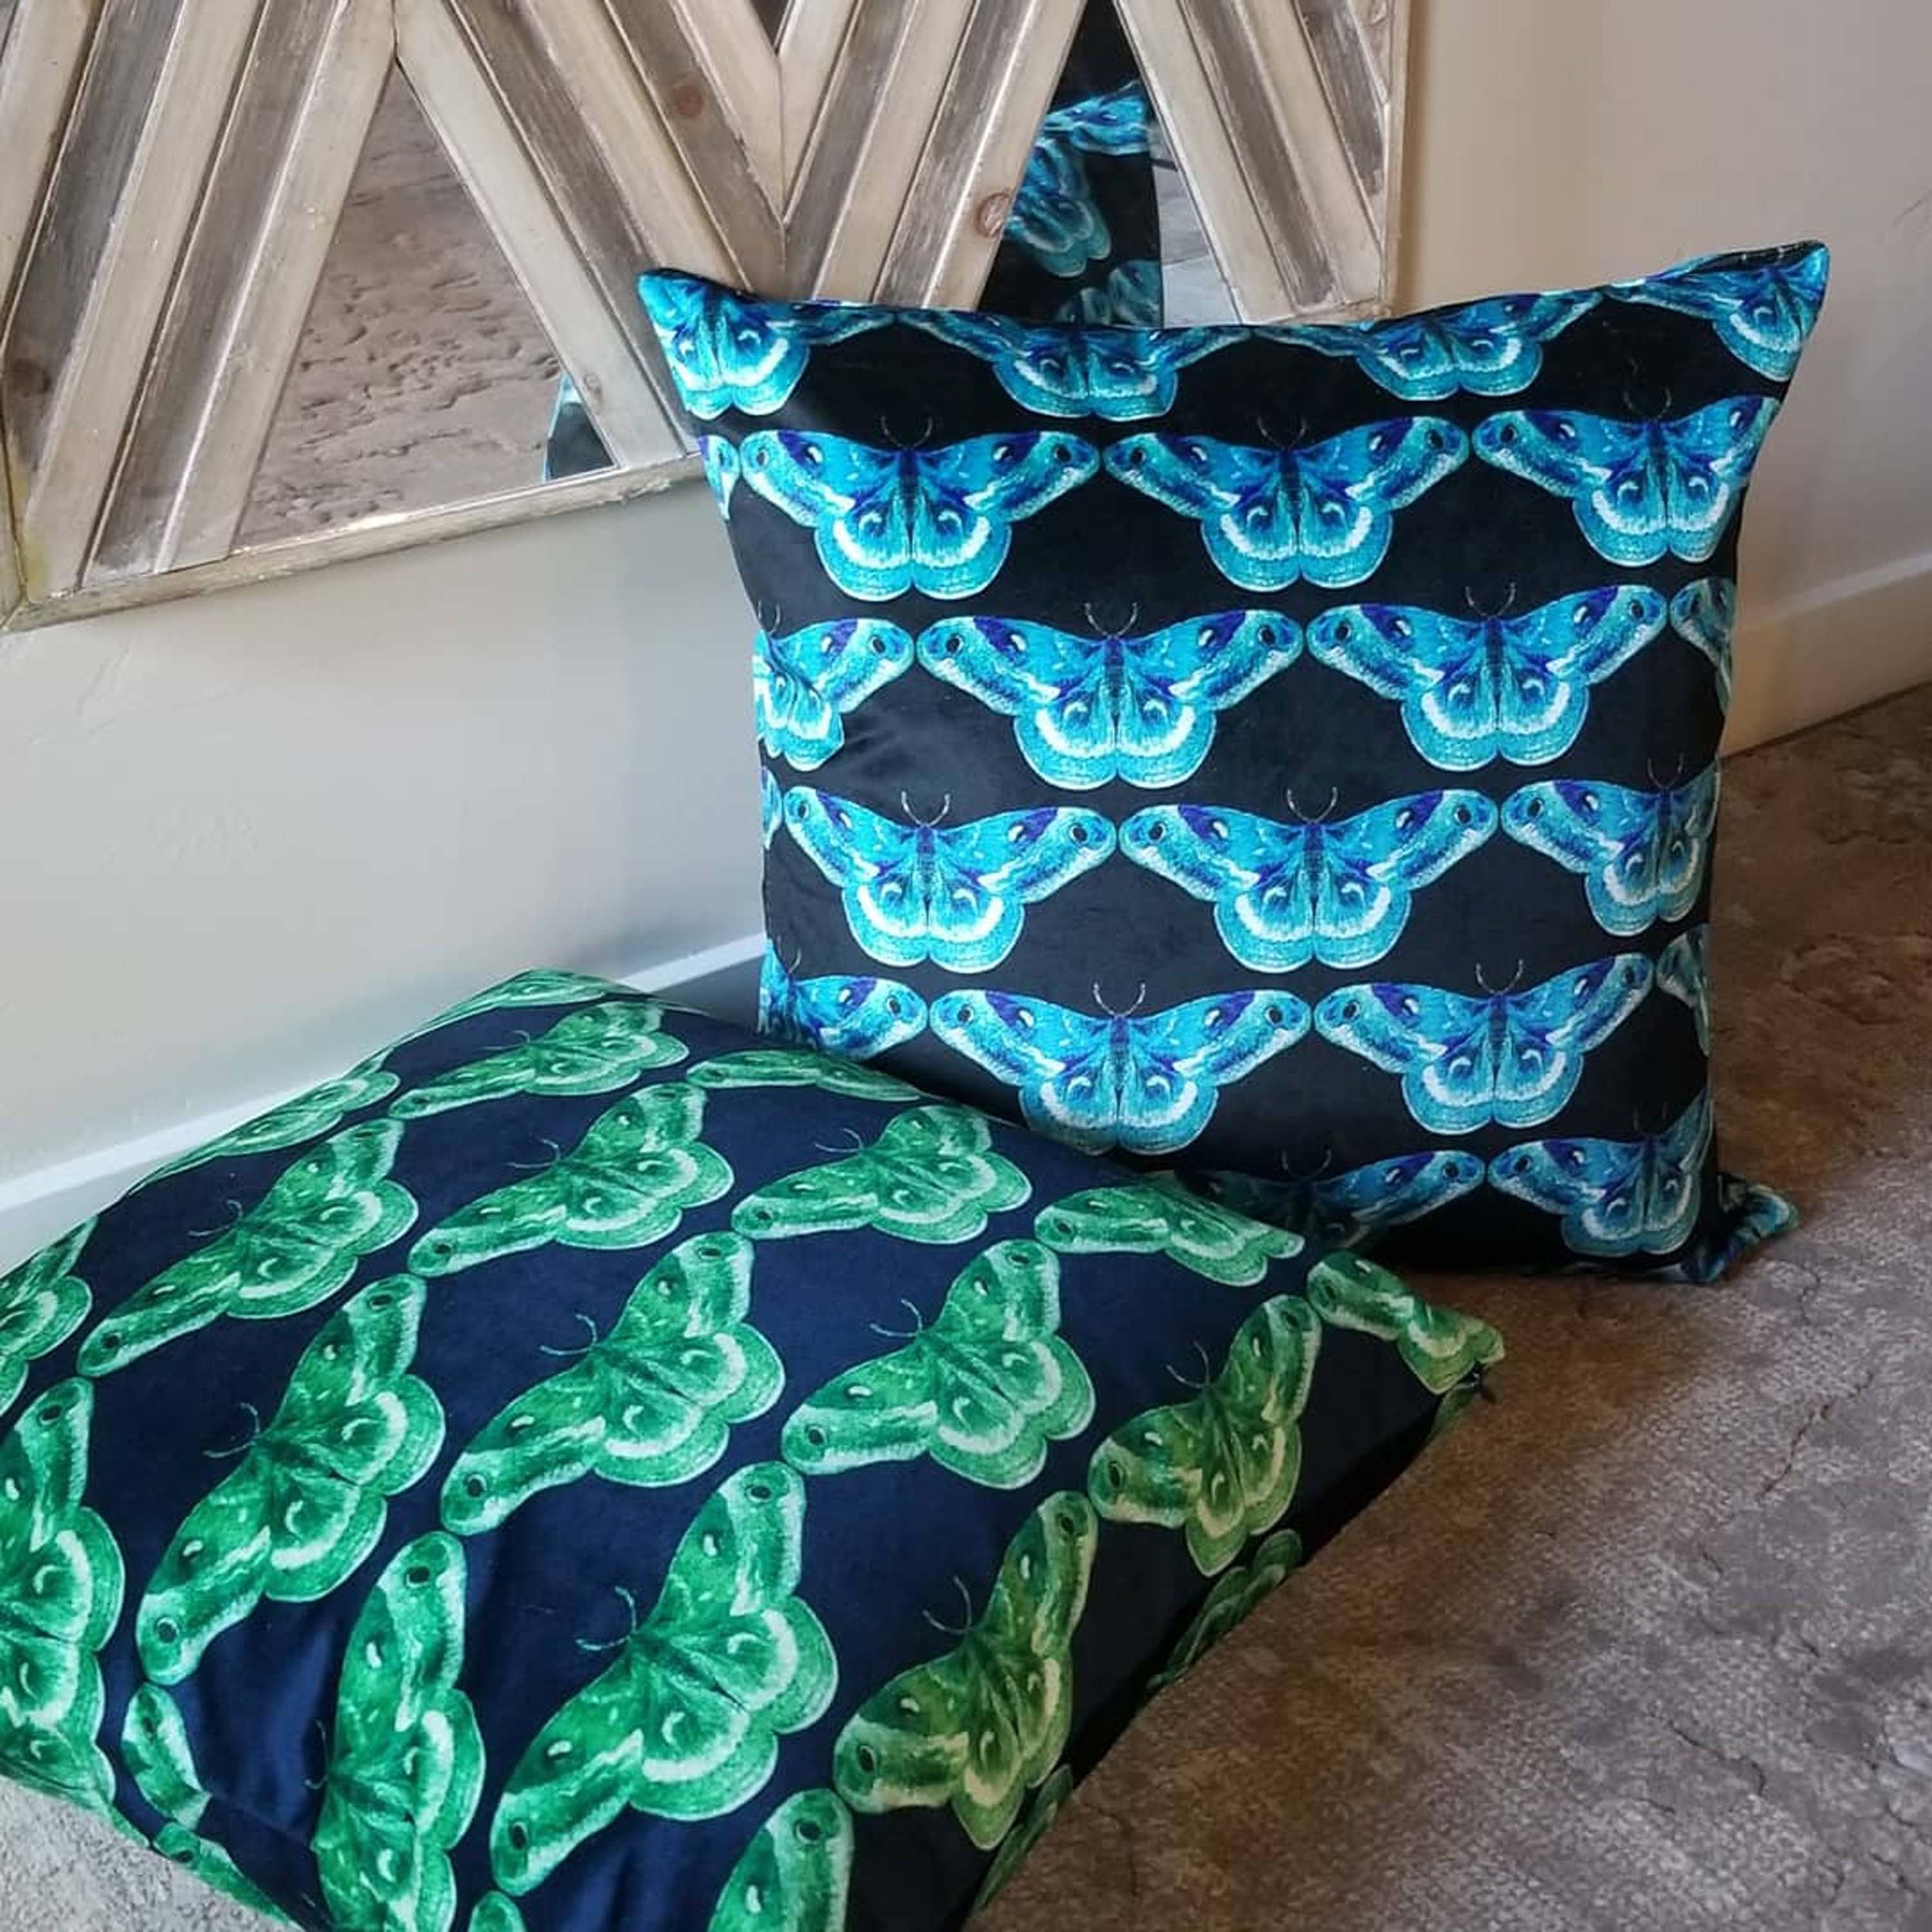 Set of black pillows with green and blue printed butterflies